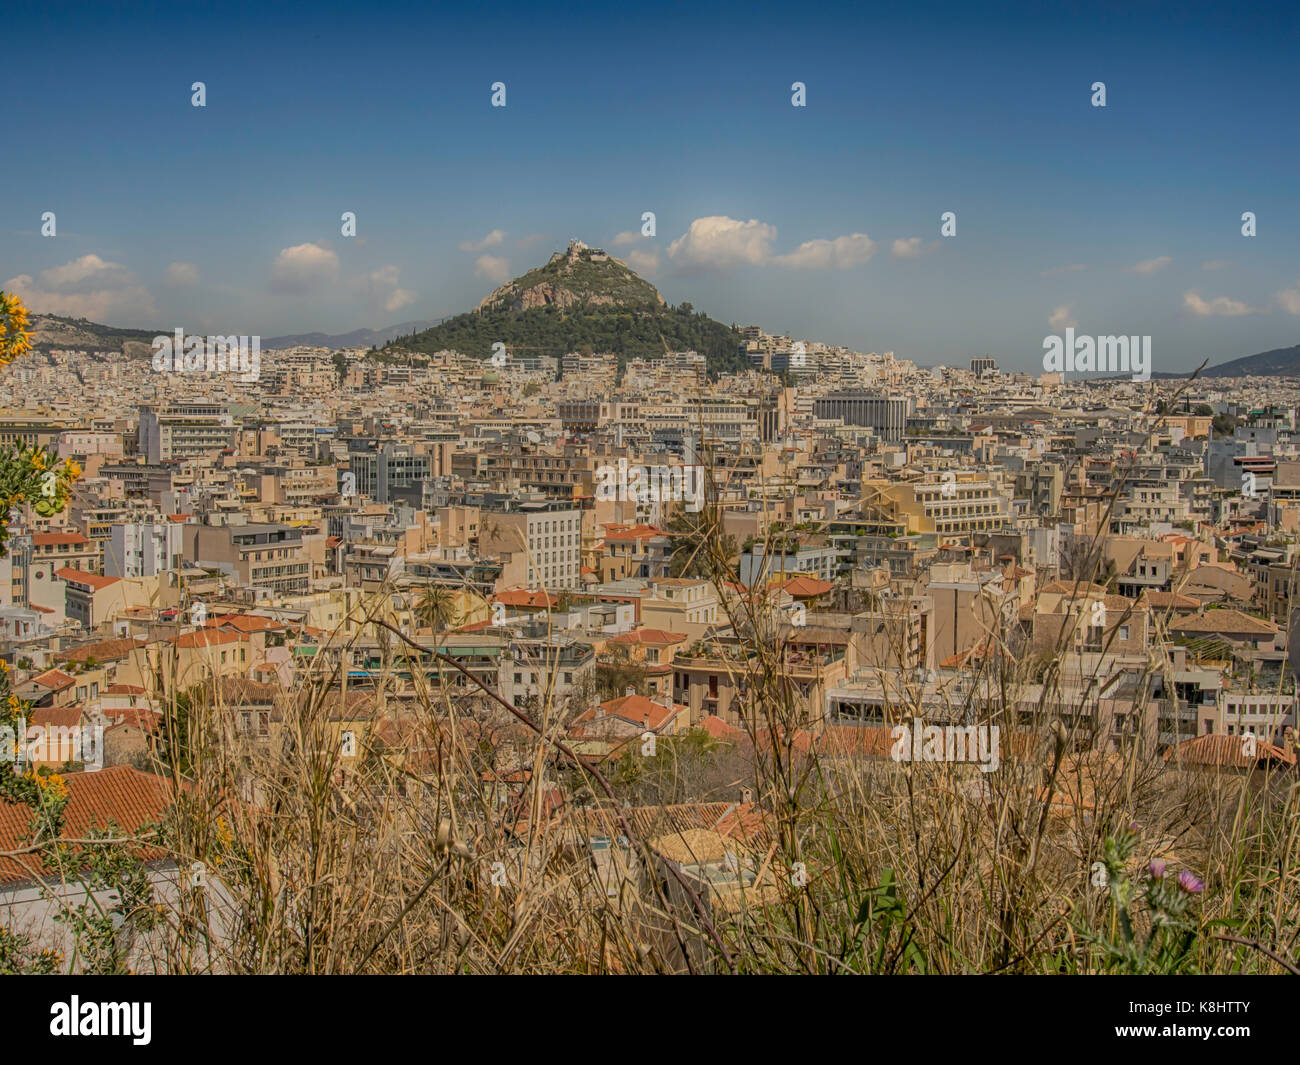 Athens, Greece - April 03, 2015: Athens - a view of the urban area north of the Agora, from the Acropolis, with - Stock Image